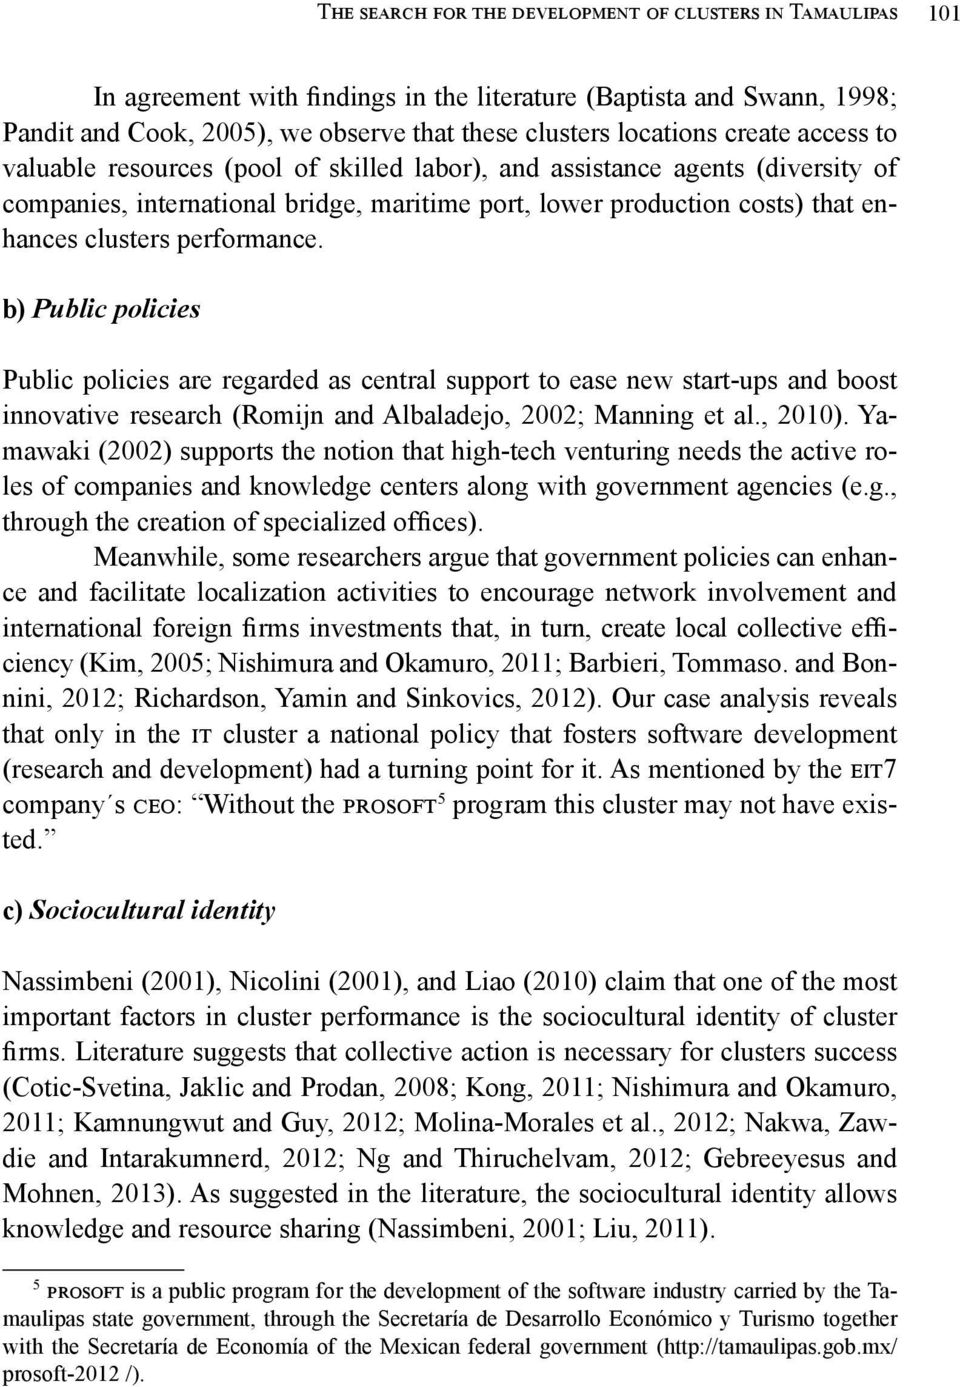 performance. b) Public policies Public policies are regarded as central support to ease new start-ups and boost innovative research (Romijn and Albaladejo, 2002; Manning et al., 2010).